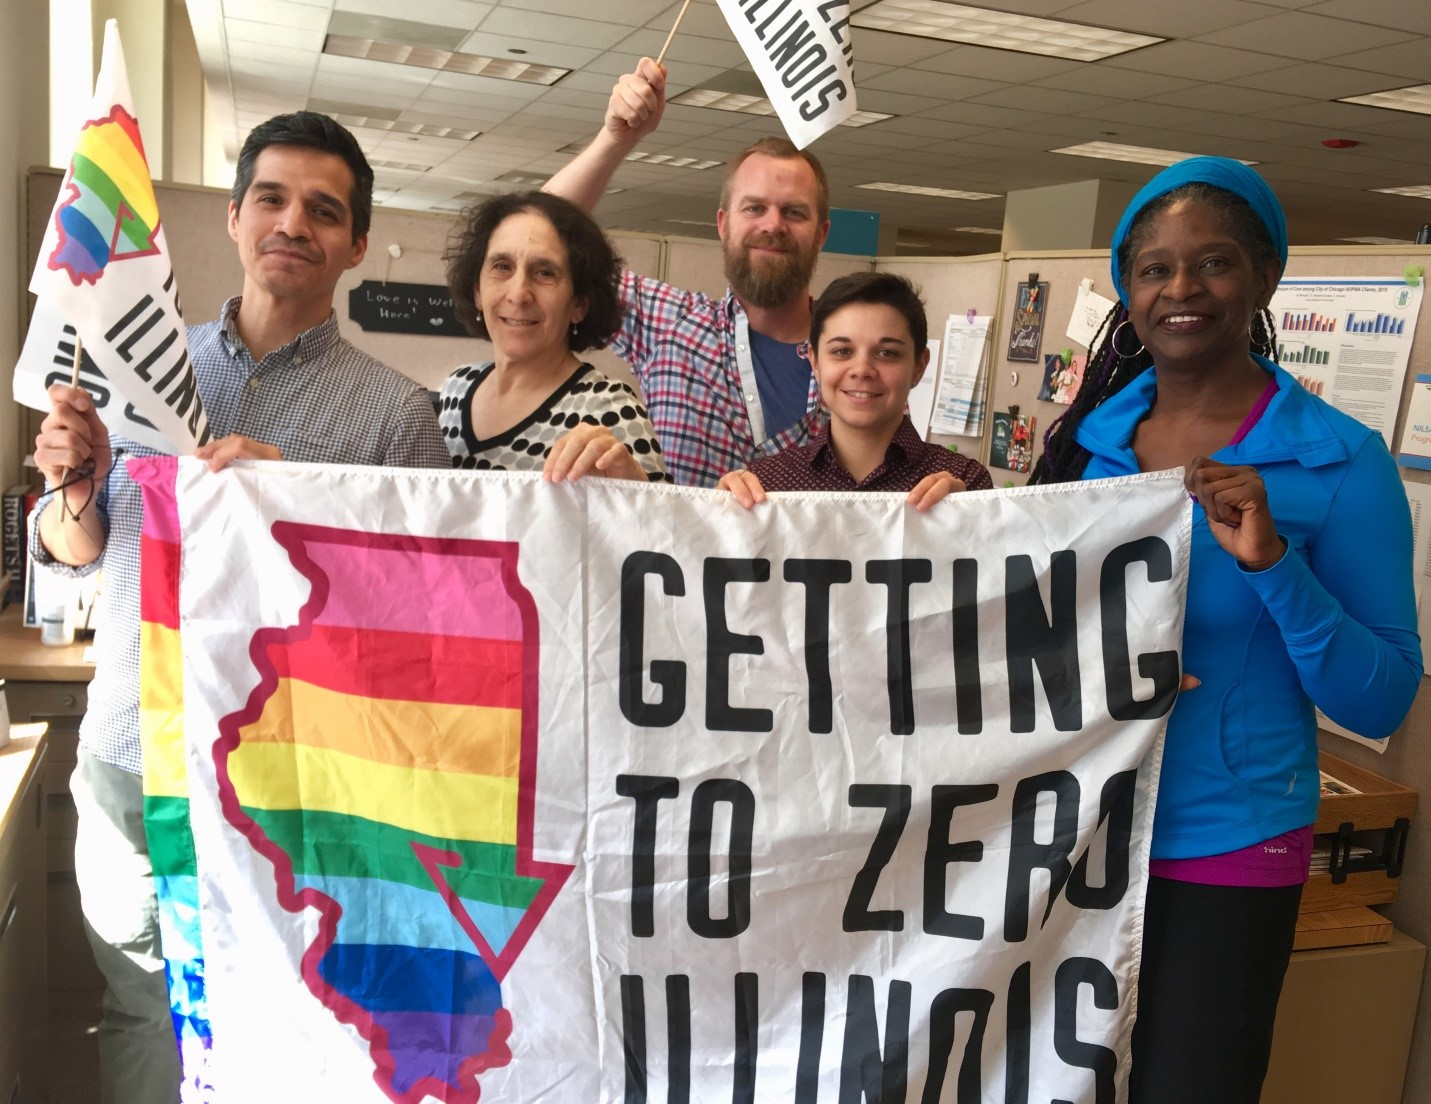 Picture of 5 people who work at Chicago Department of Public Health holding up Getting to Zero Illinois rainbow flags.